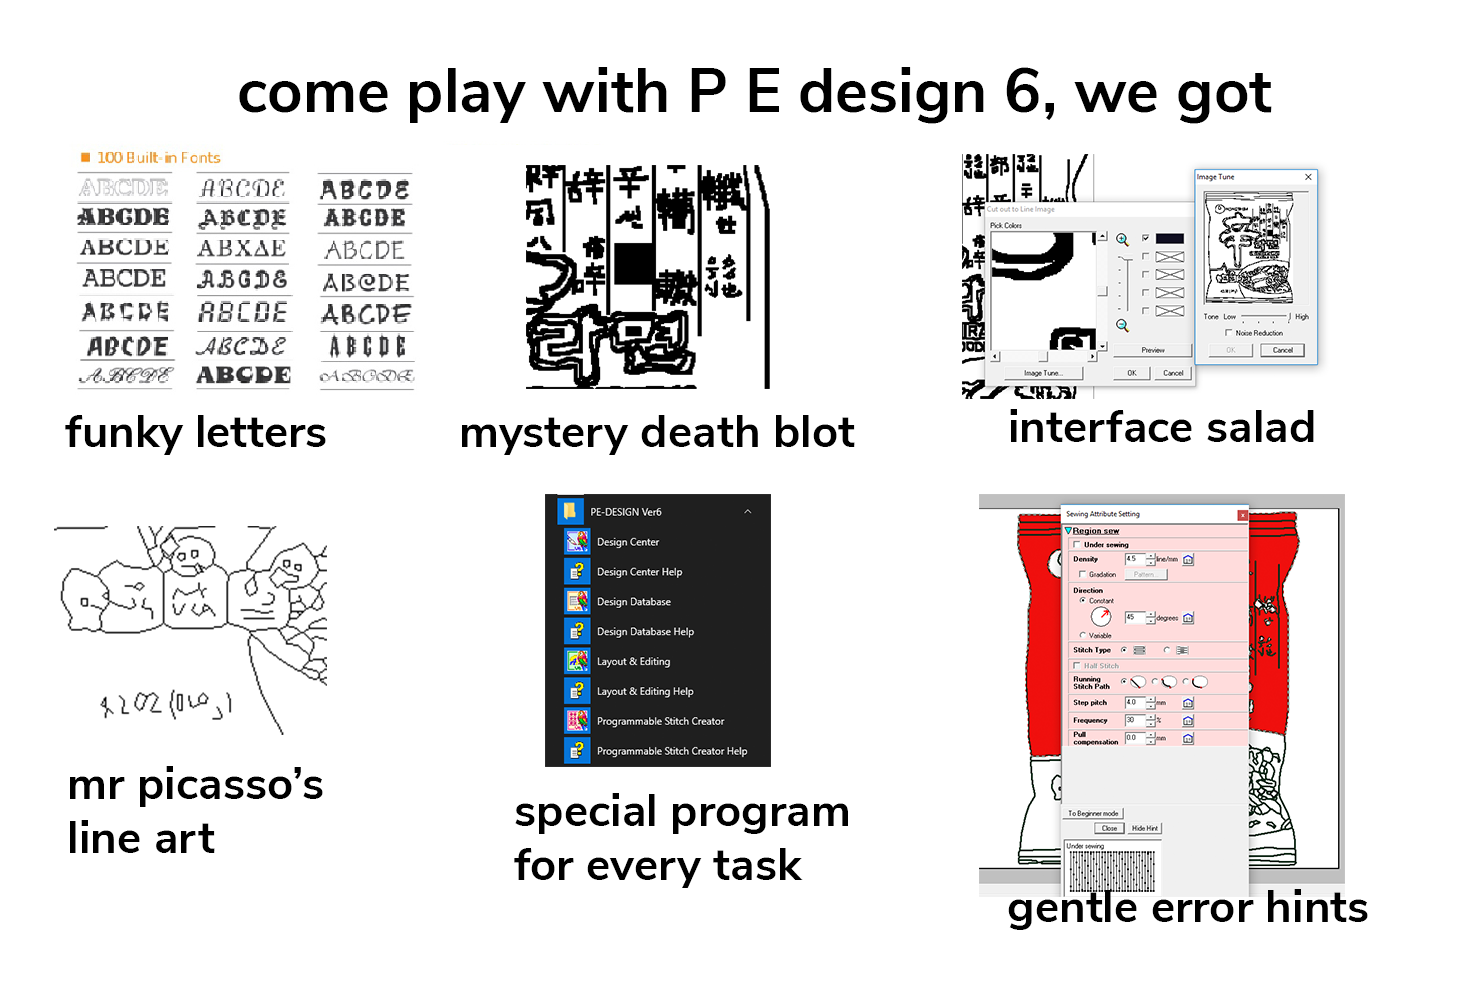 a meme describing 6 different negative qualities of brother's PE design 6 software: bad typefaces, mystery blobs, too many dialog boxes, bad vectorisation, too many separate programs, bad error messages